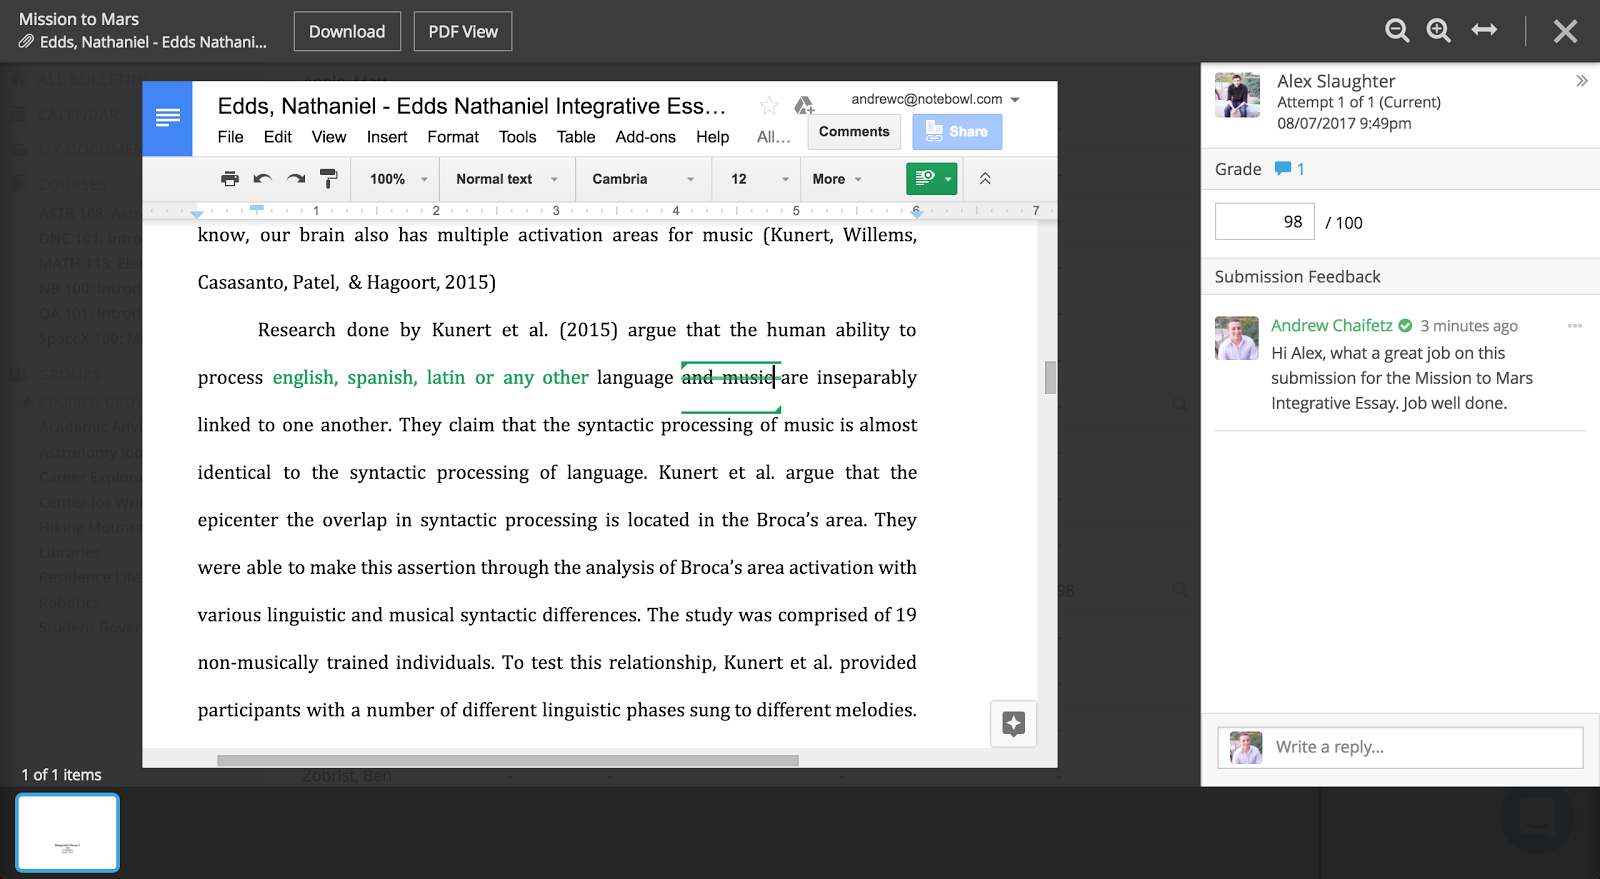 Notebowl rolls out annotations with google docs notebowl while google docs offers real time collaboration within a single document faculty may not always want students to see their commentary and edits in ccuart Image collections